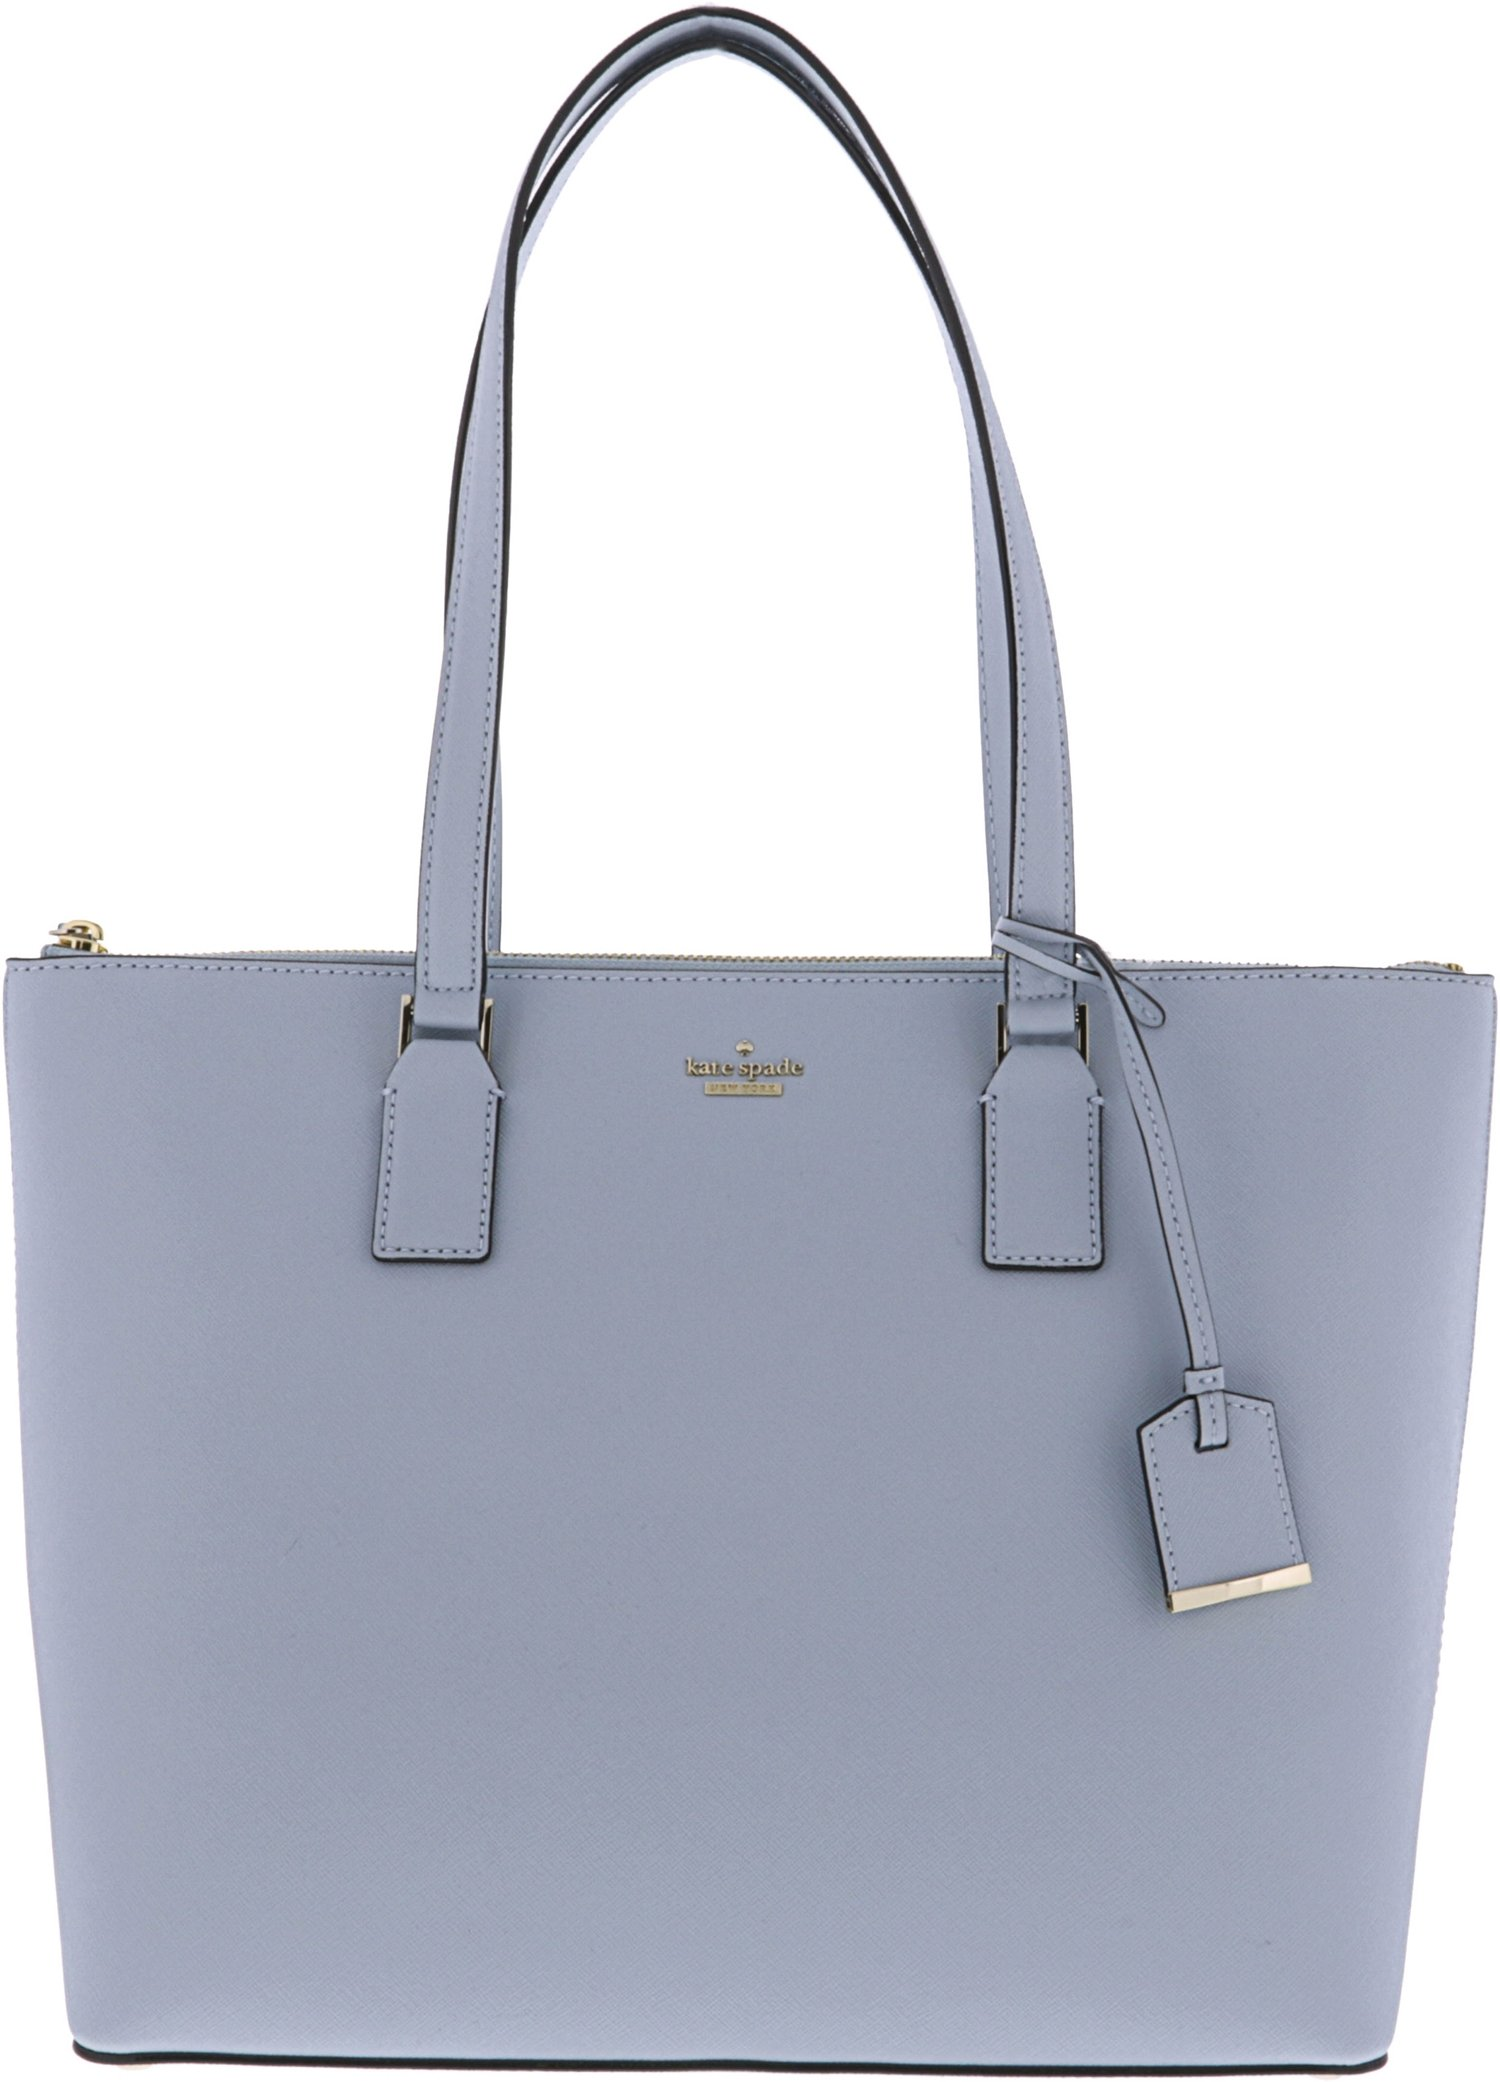 Kate Spade New York Cameron Street Leather Lucy Tote